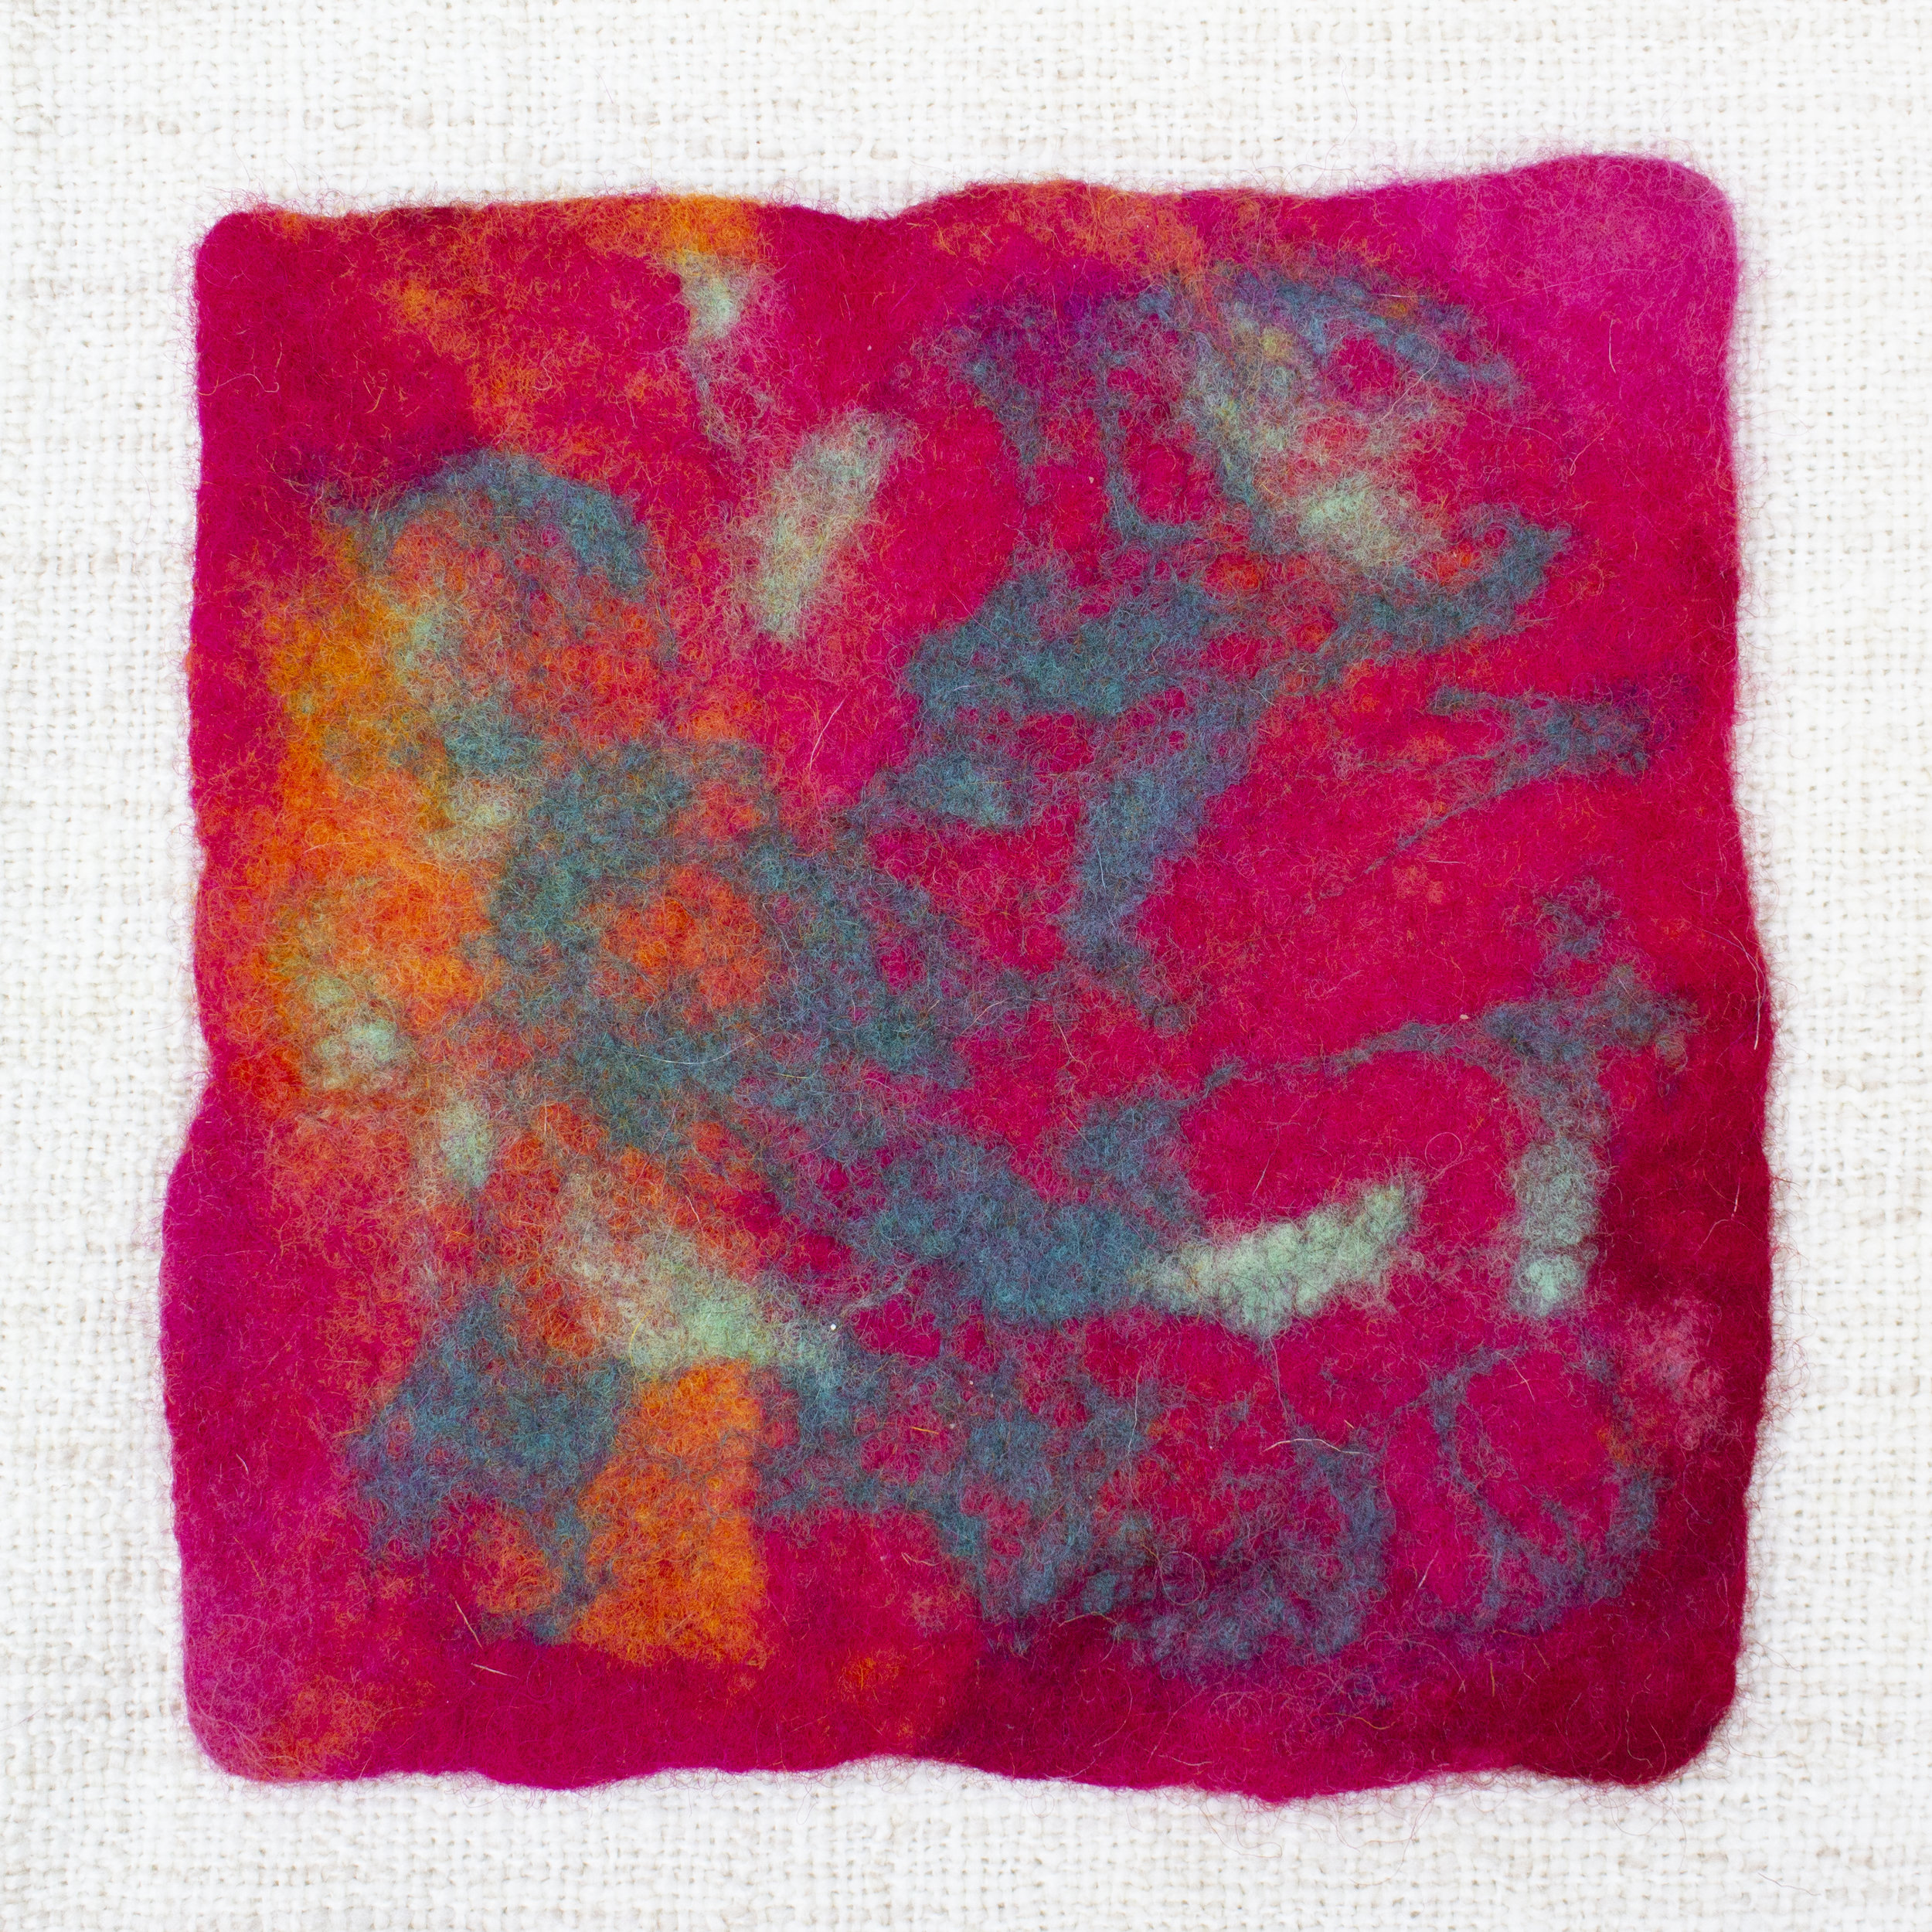 wet felted swatch - Shrinkage Rate = 25%